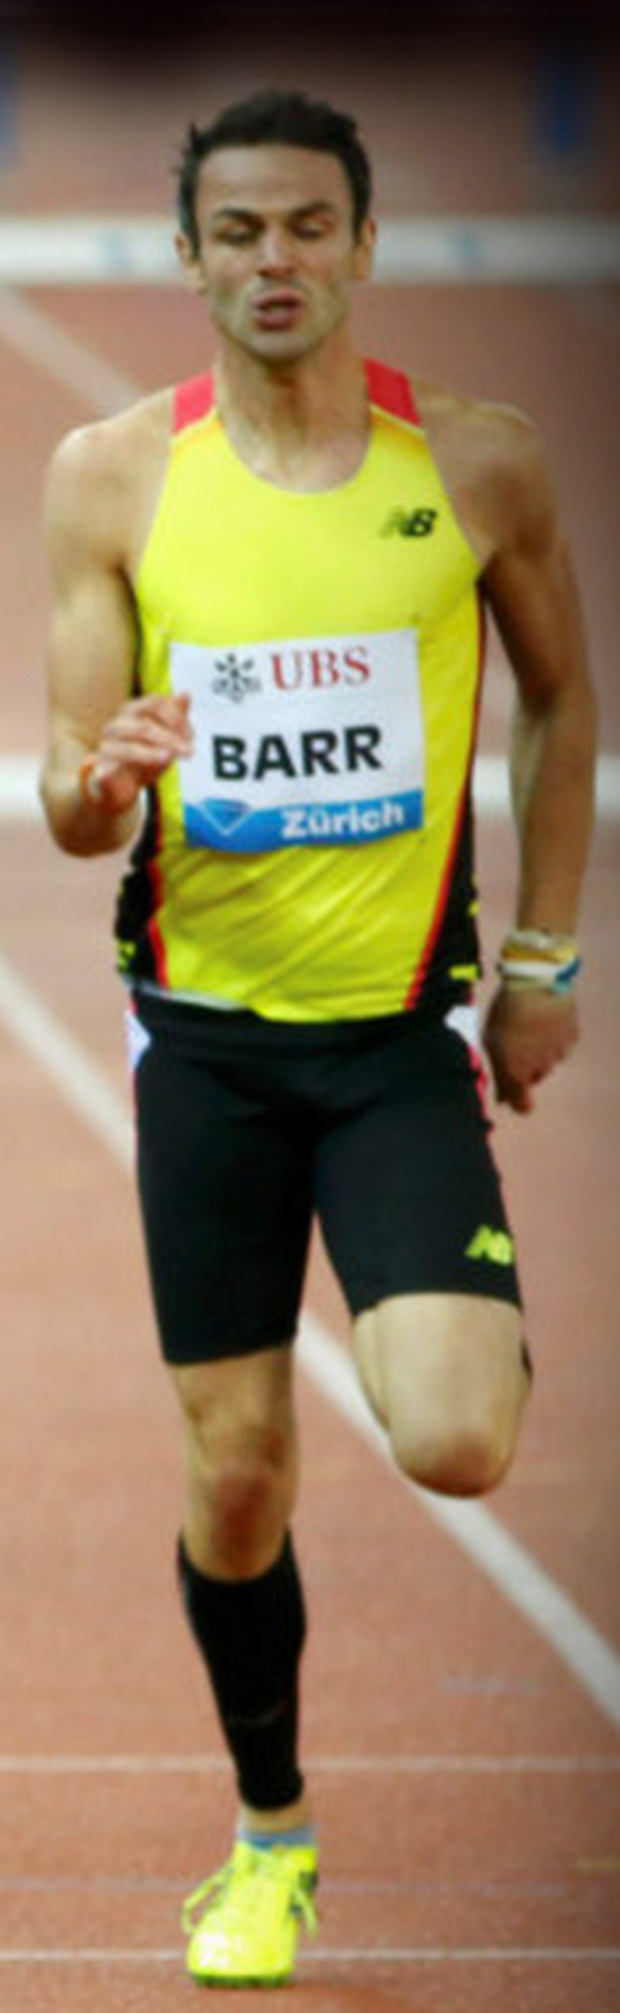 Thomas Barr during his excellent run in Zurich